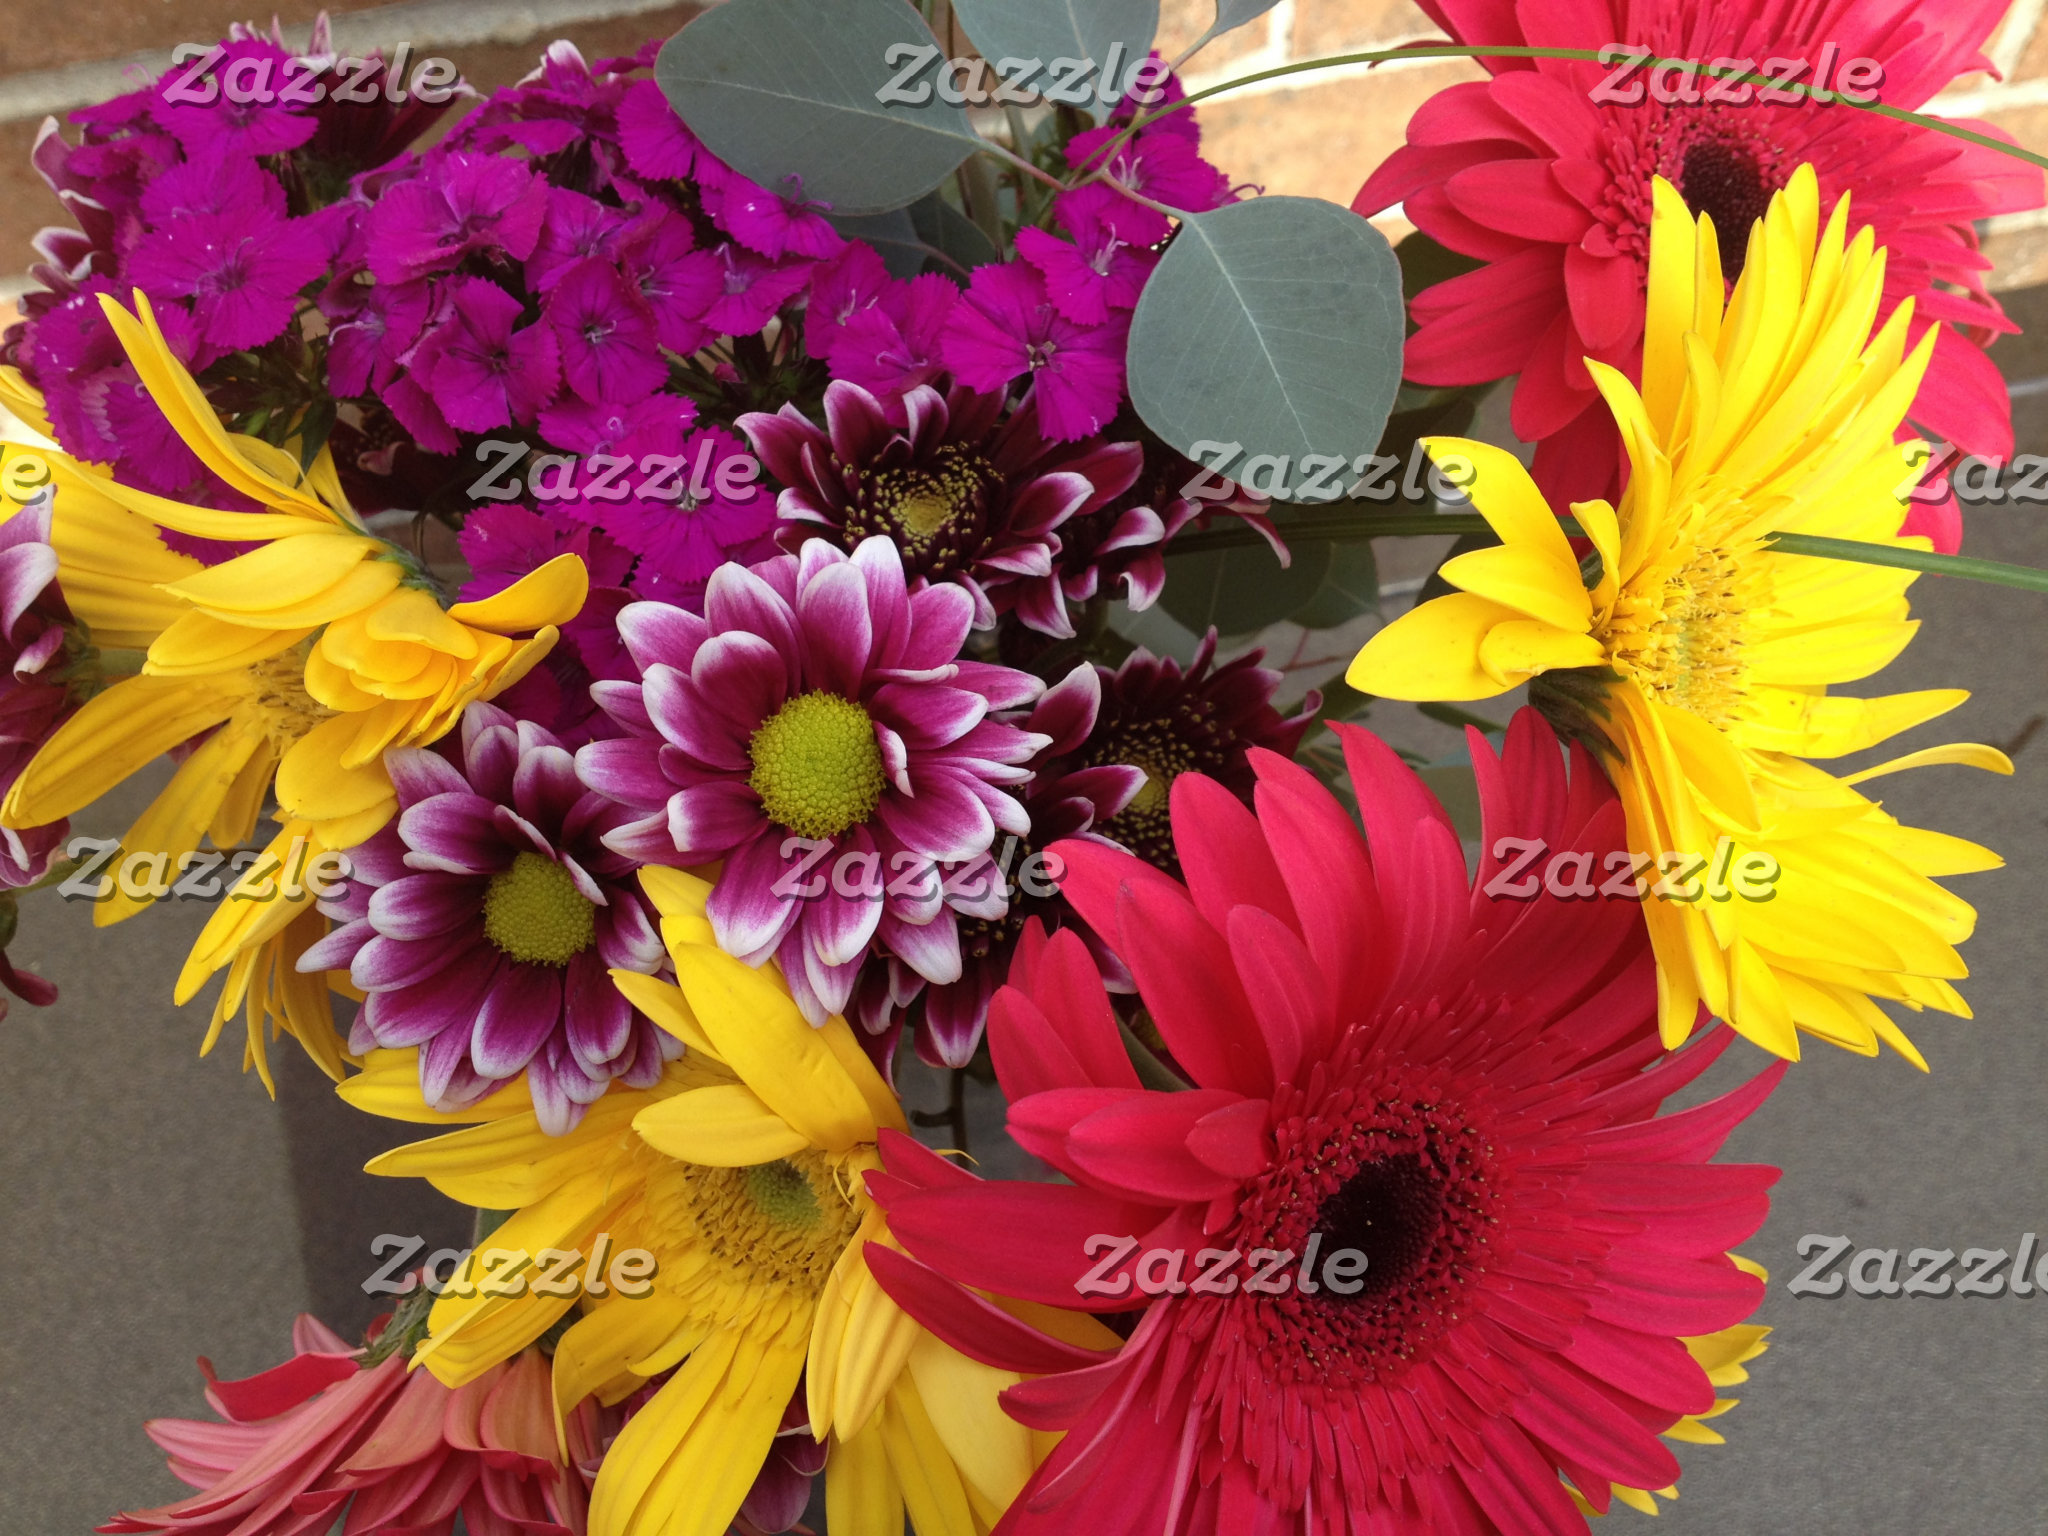 Awesome Daisies Flowers Beauty